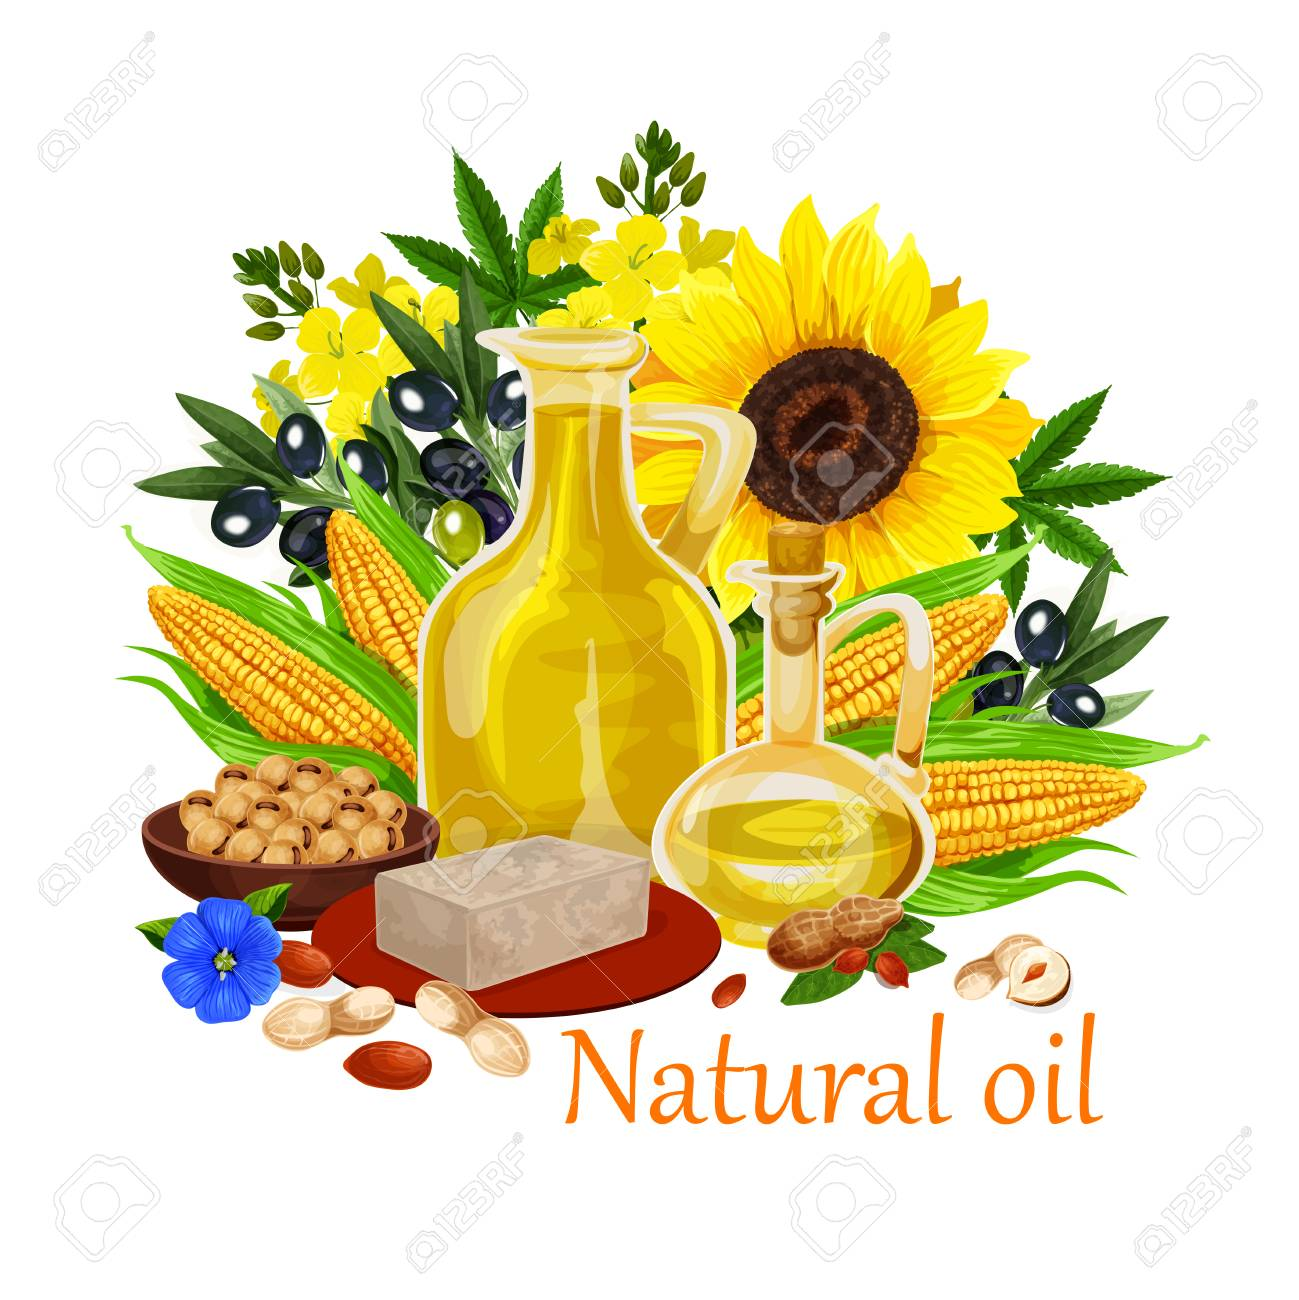 Natural oil made of sunflower seeds, olive and corn, peanuts